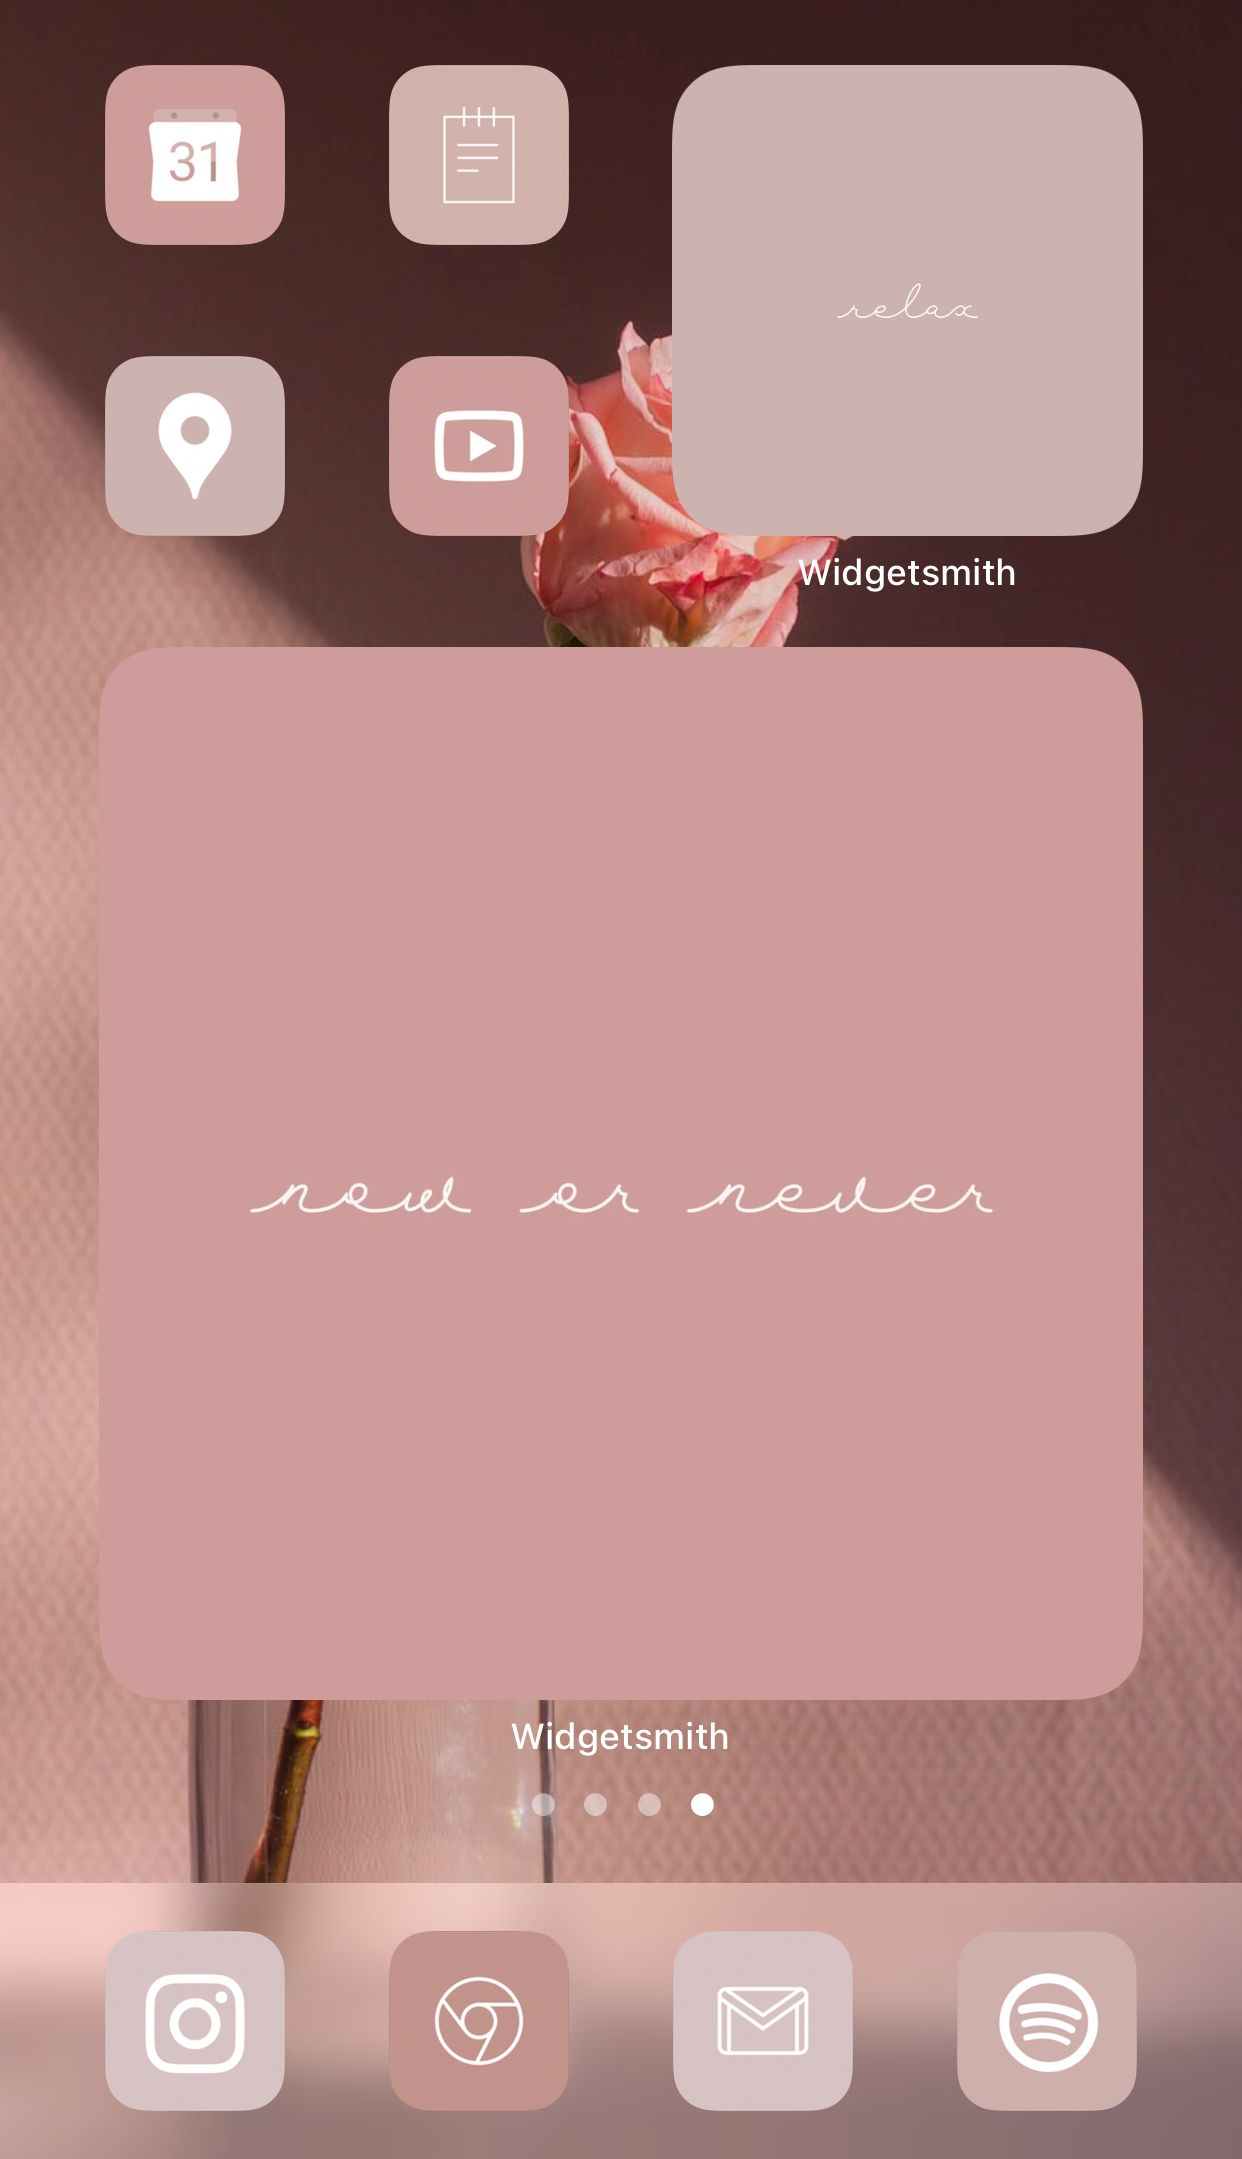 Warm Rose Neutral Aesthetic Iphone Home Screen Ideas Inspo Inspiration App Covers App Icons Ios 14 In 2020 Inspiration App Iphone App Layout Iphone App Design